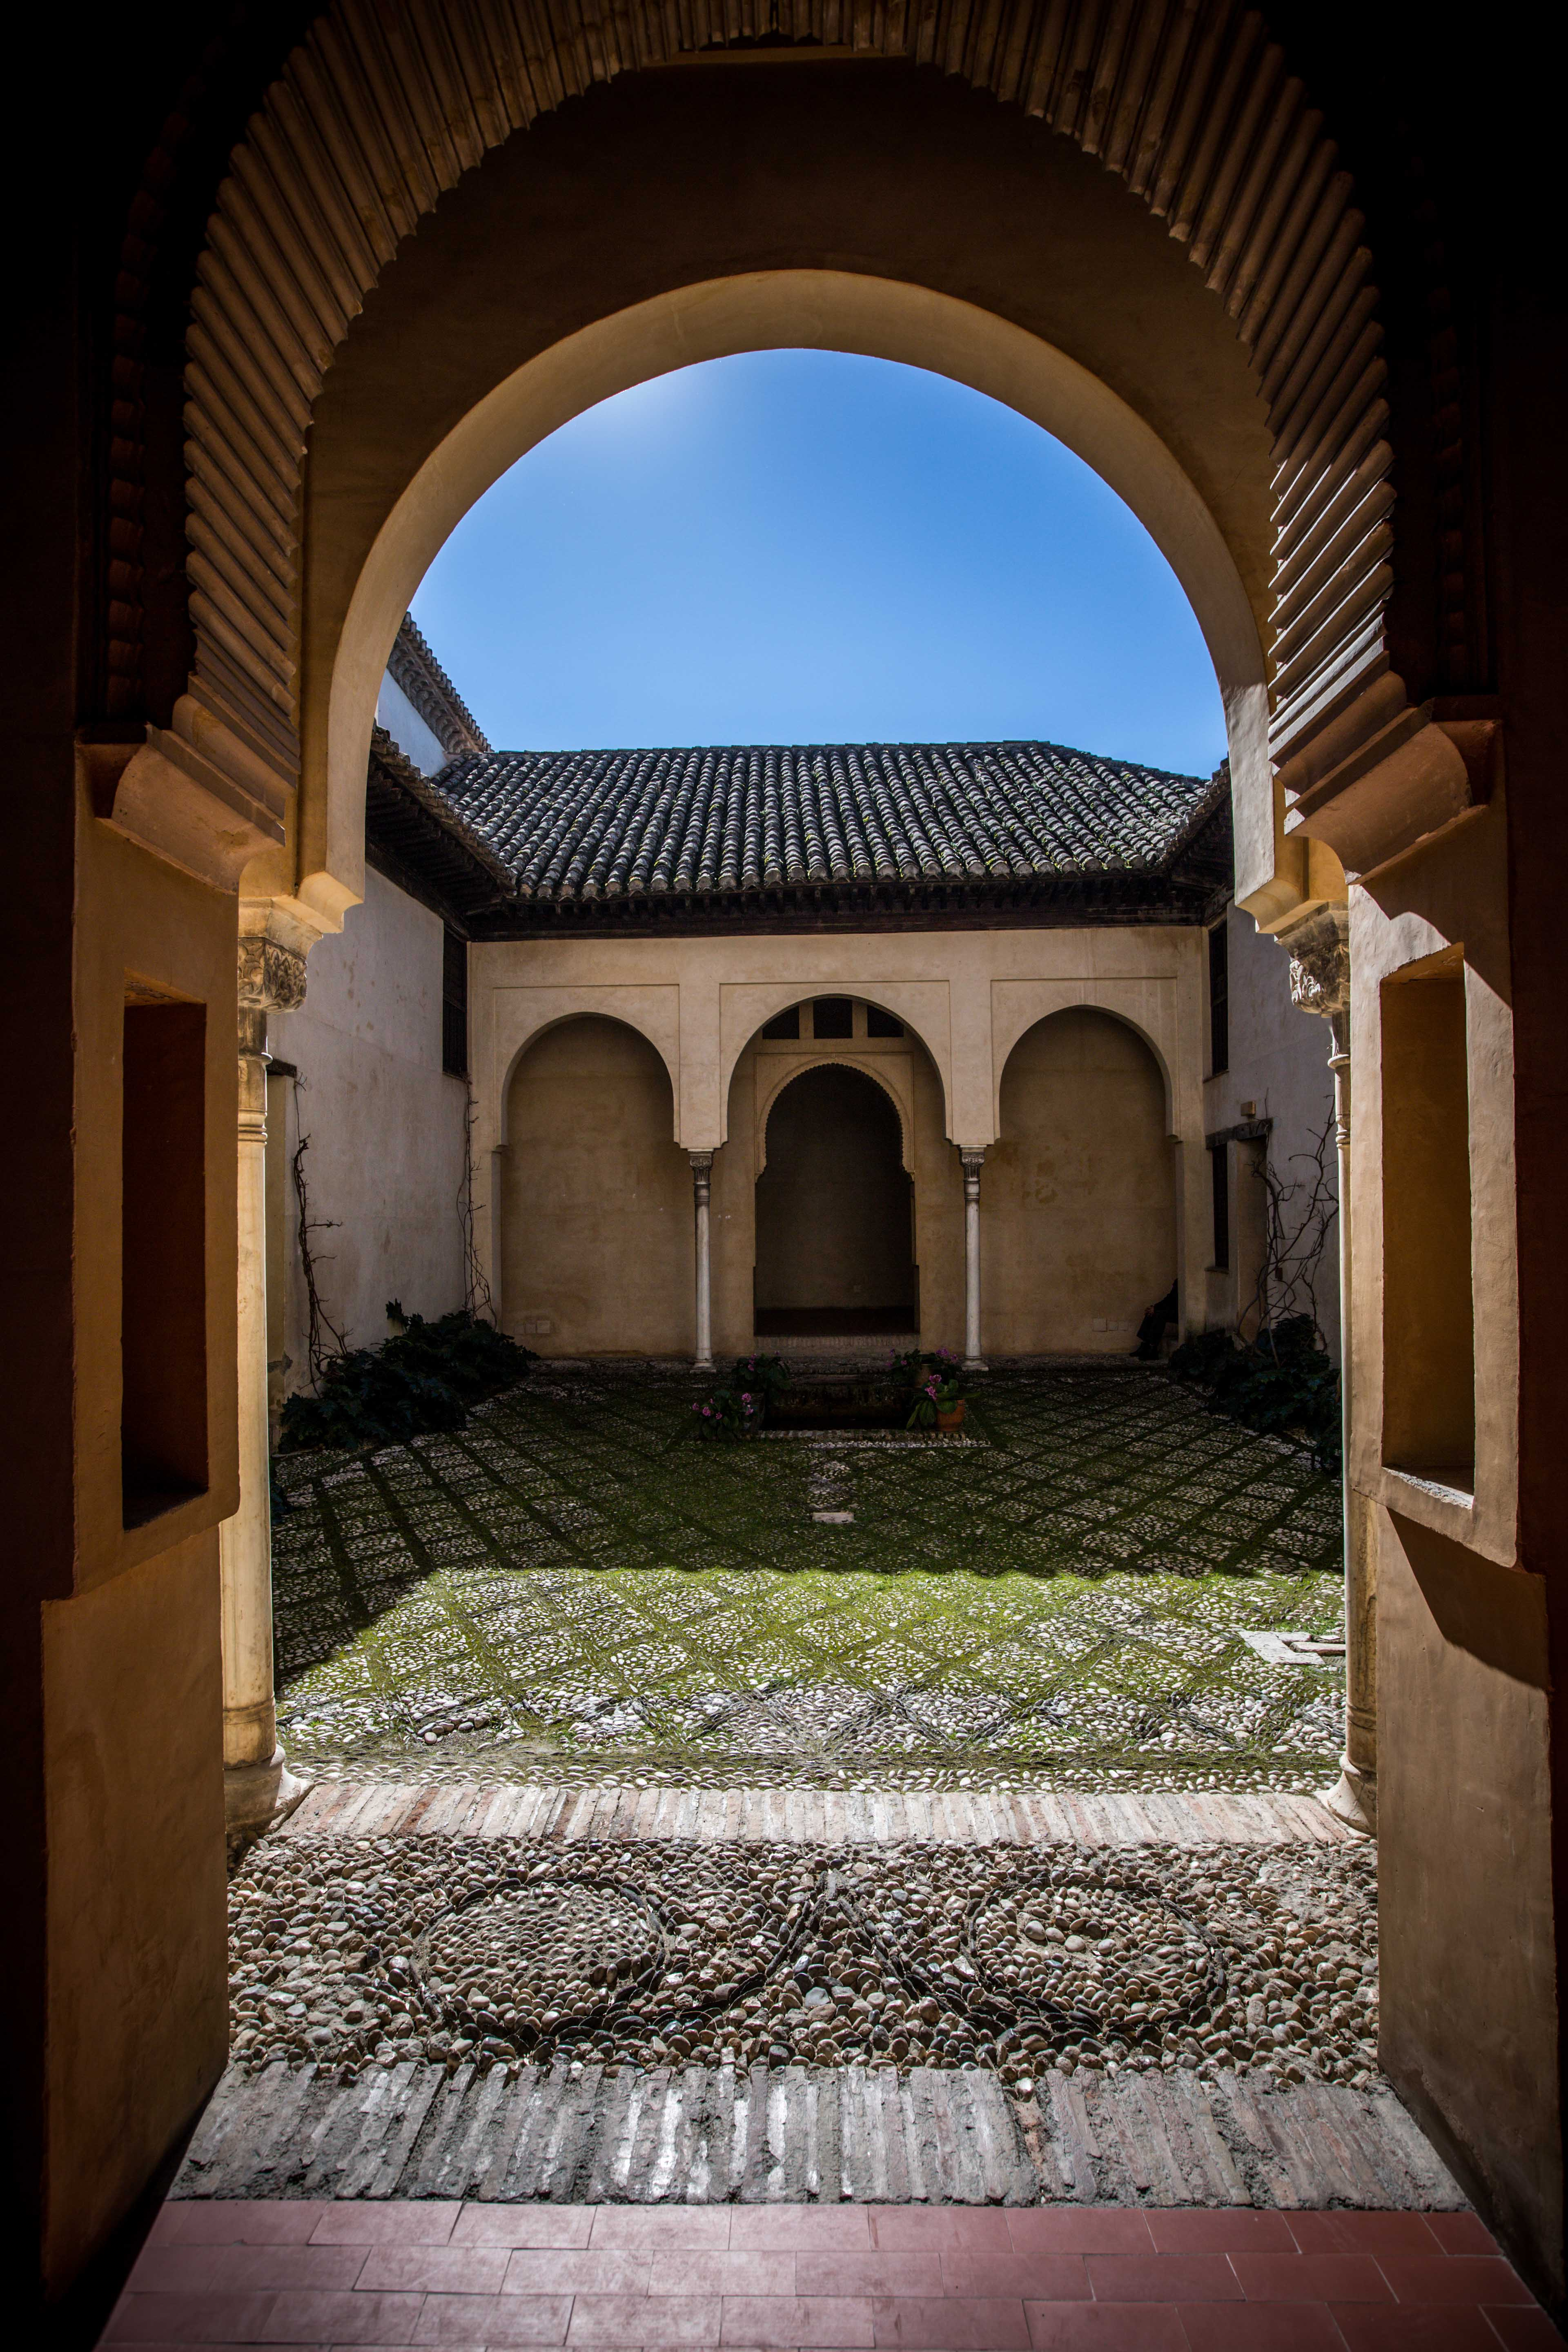 The Dobla de Oro, a stroll through history between the Alhambra and the Albayzín